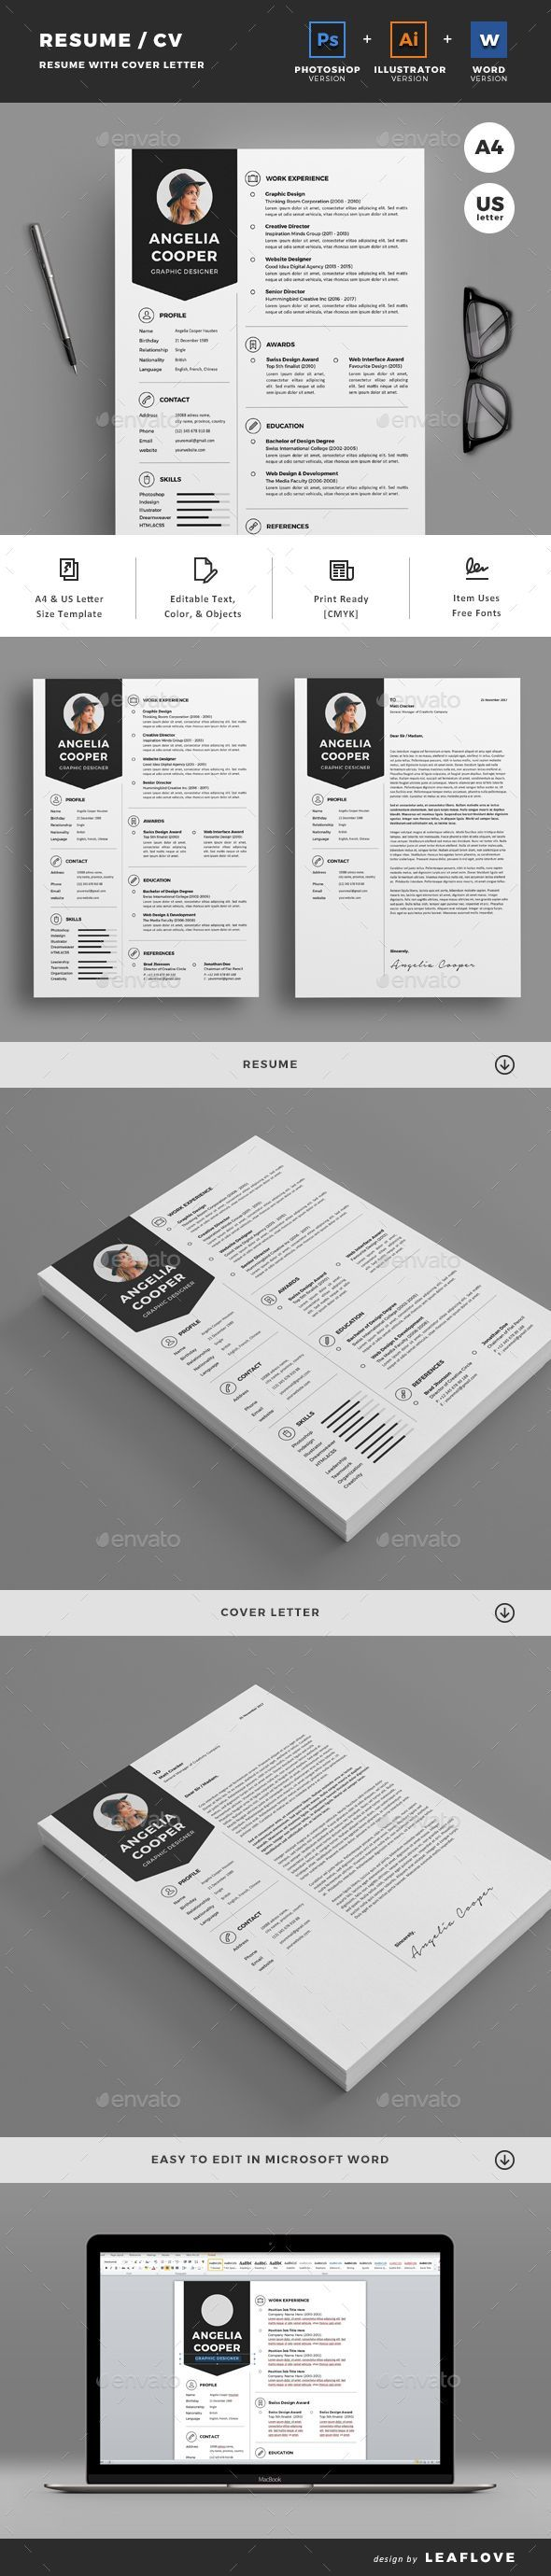 Resume by LeafLove Resume / CV. Professional, clean, & creative resume template designed to make a good impression. ................................